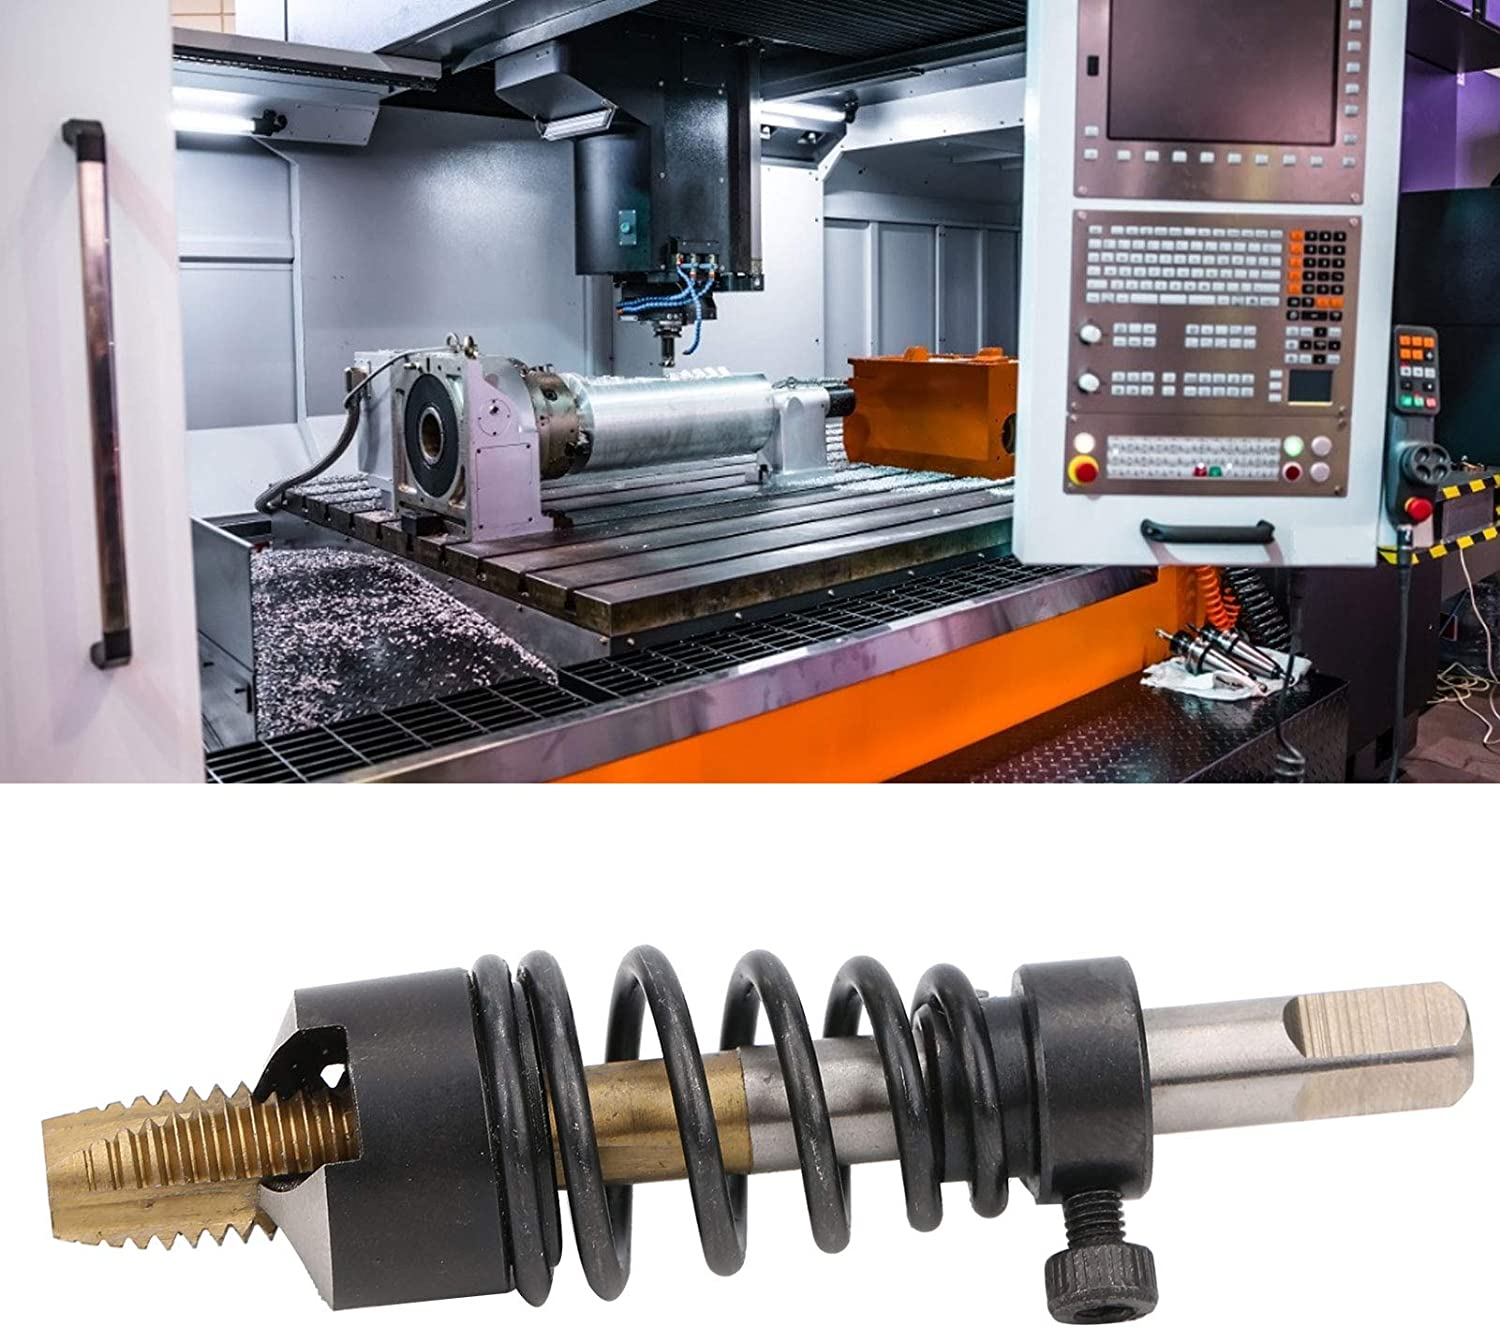 Chamfer High‑speed Max Manufacturer direct delivery 58% OFF Steel Save Time Perfo High Tap